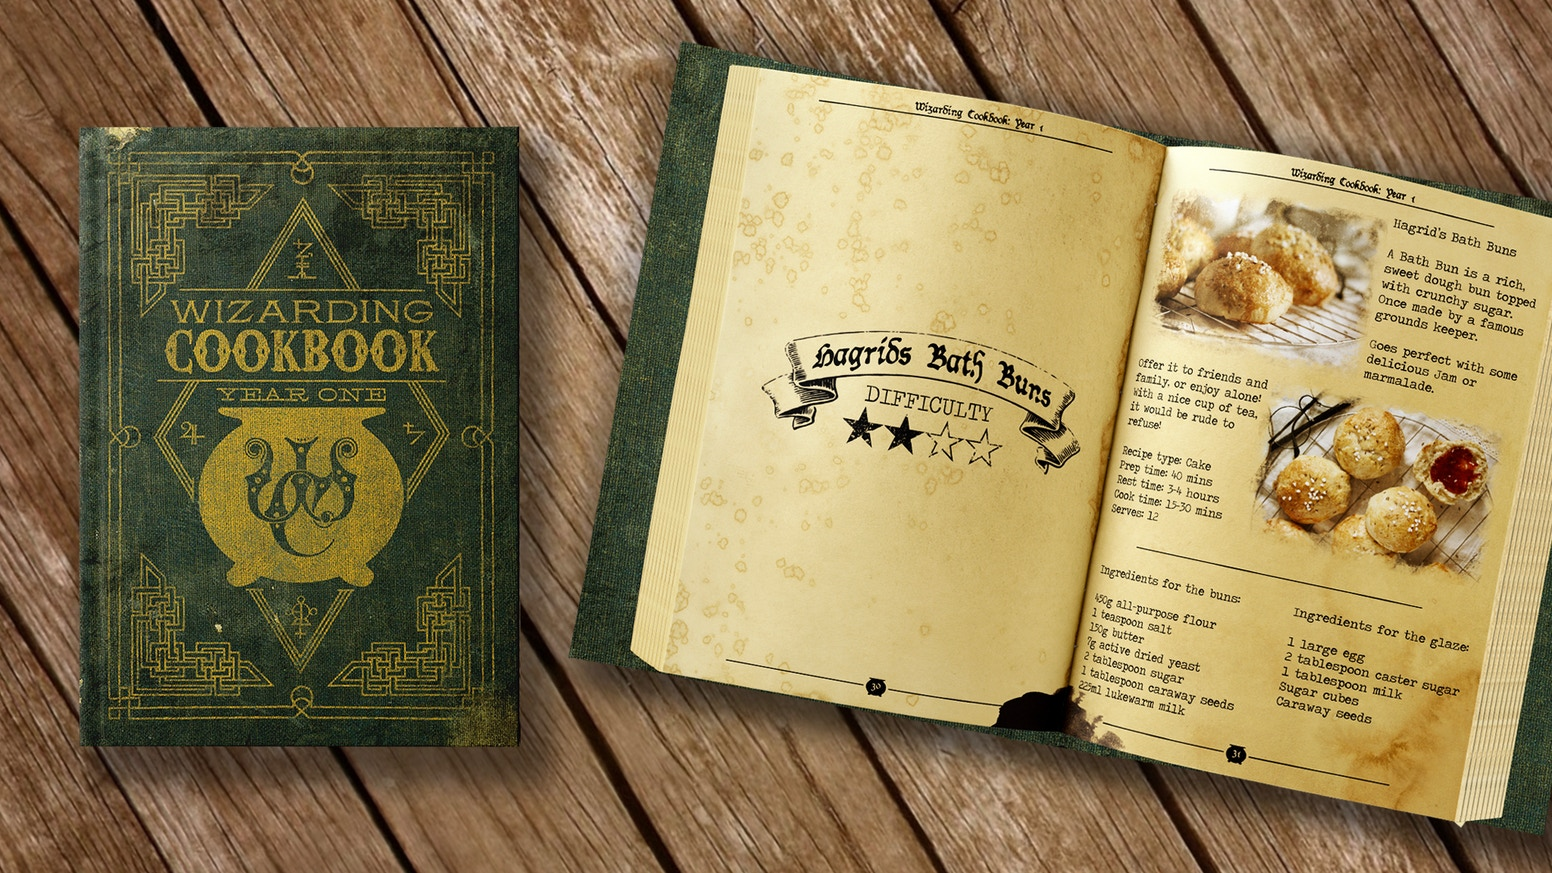 ForeverMagic are looking to create a Cookbook for fans from the Harry Potter universe! A comprehensive book with beloved recipes!